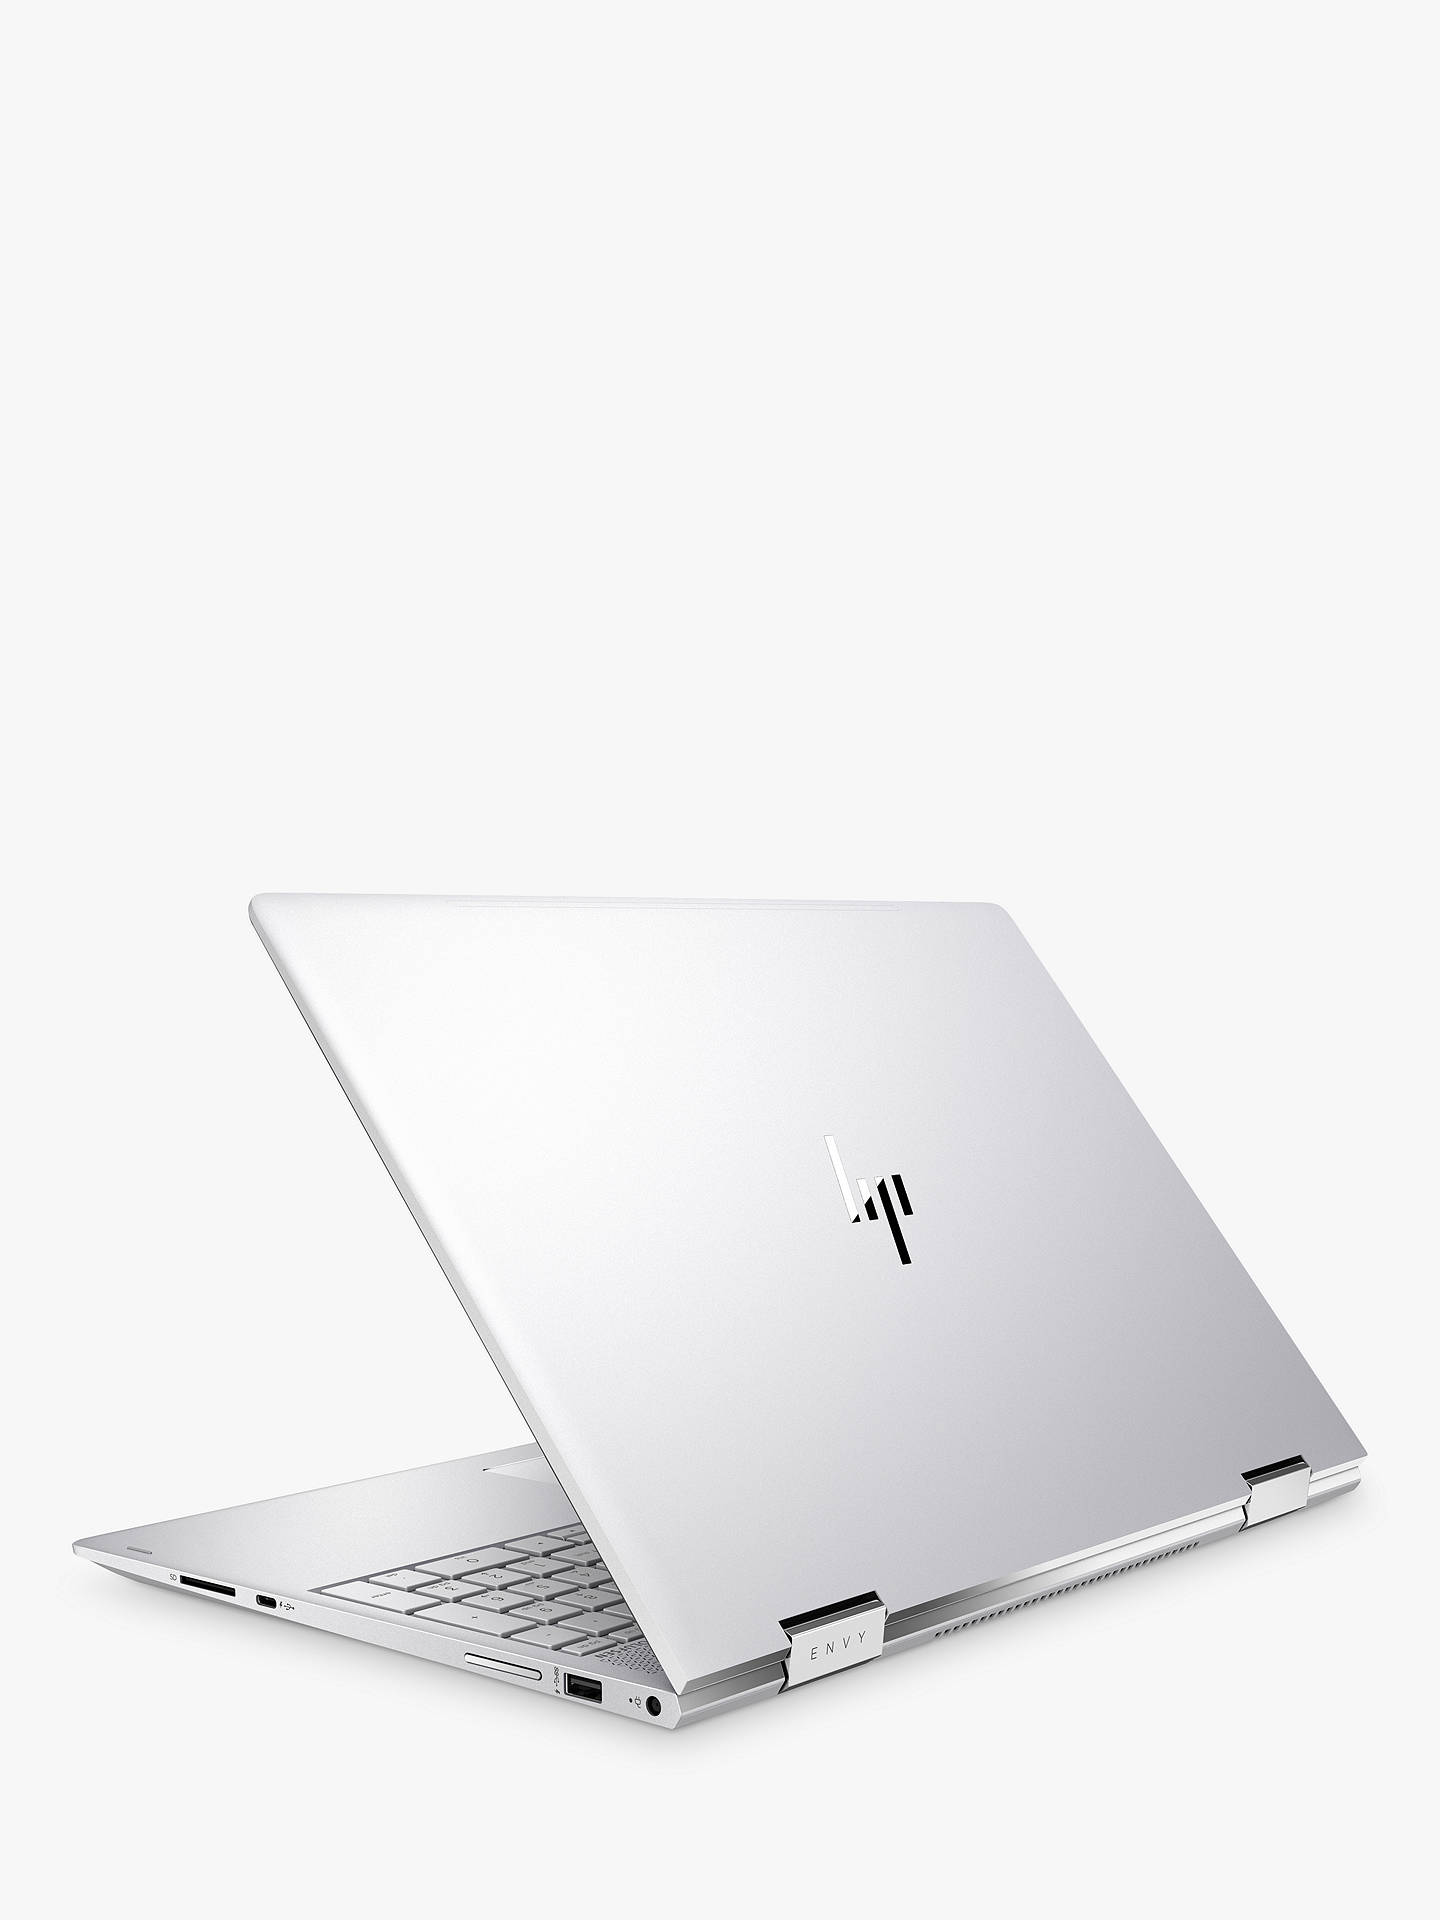 HP ENVY x360 15-bp103na Convertible Laptop with Stylus